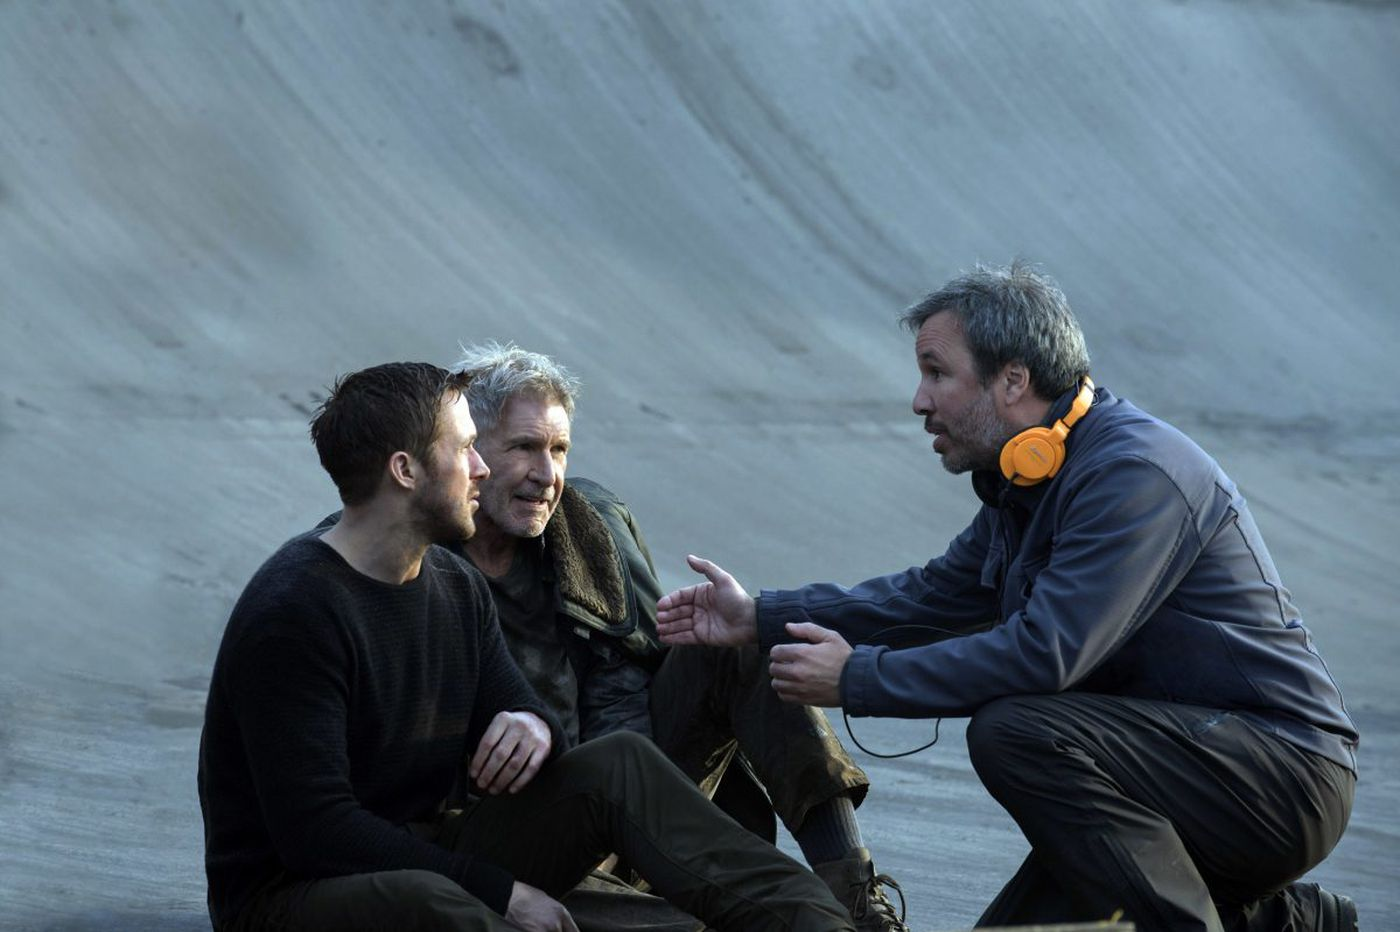 'Blade Runner 2049': How director Denis Villeneuve approached a sci-fi classic